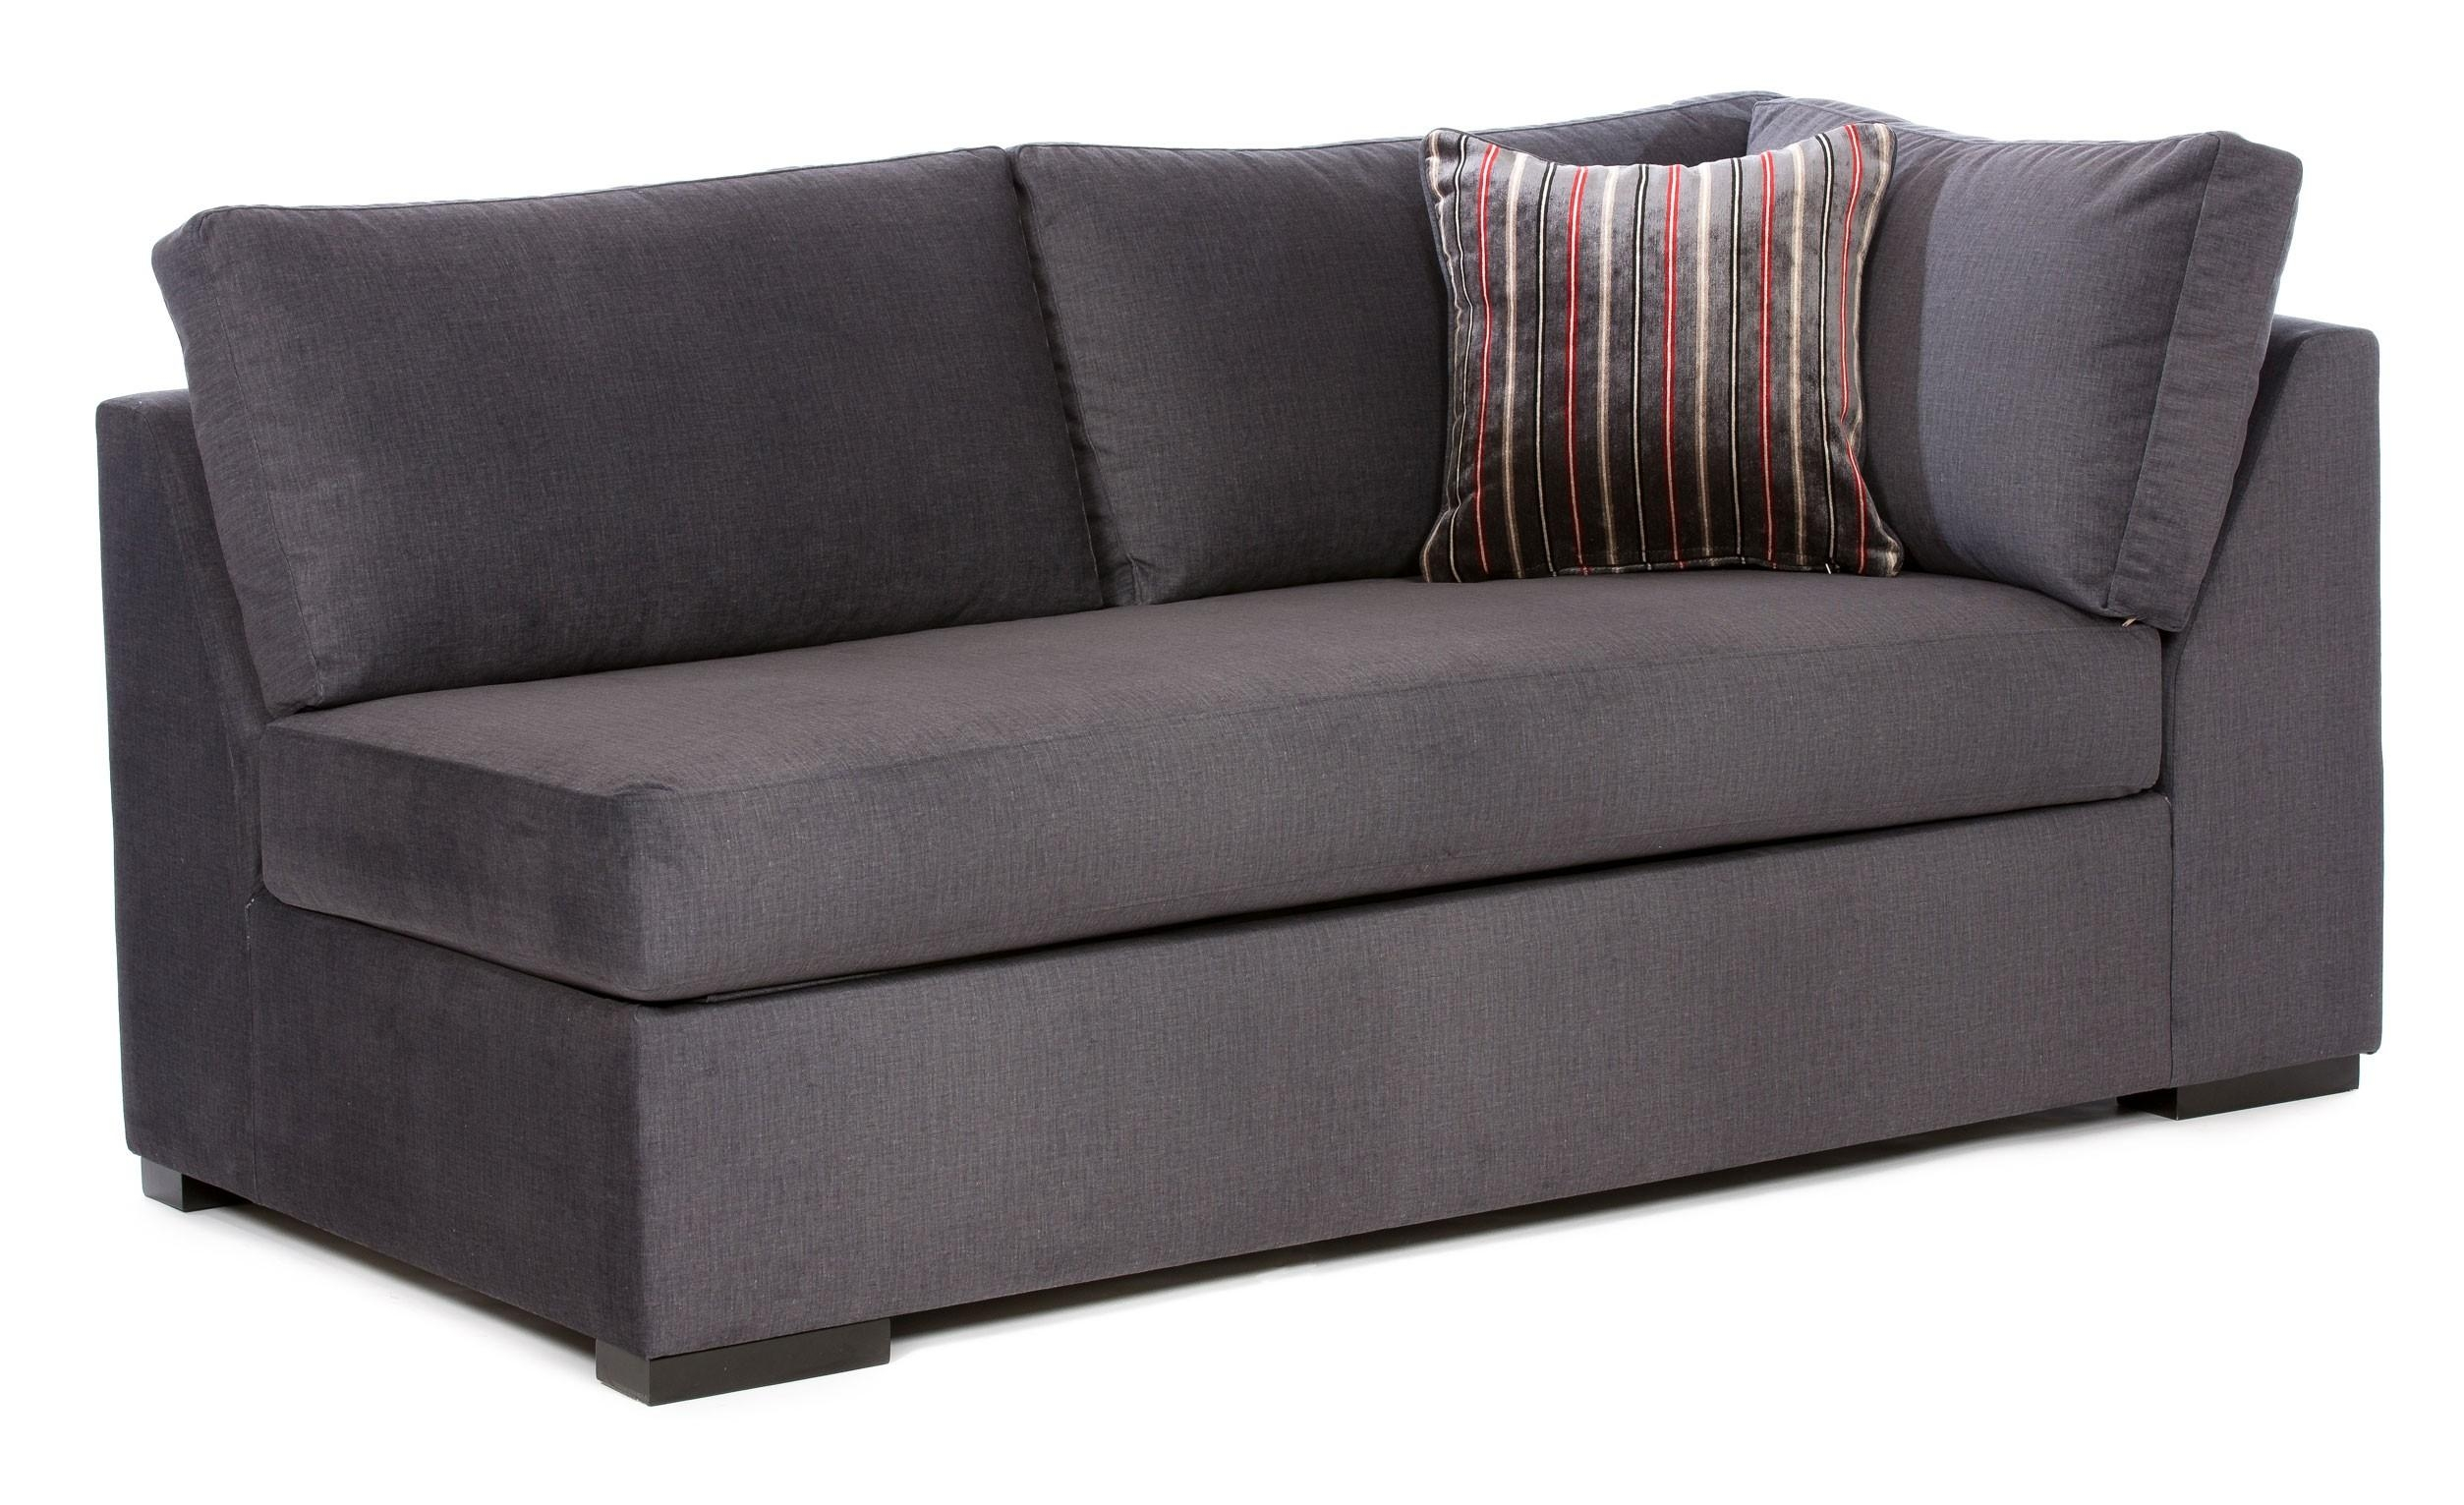 Sofa Bed With Chaise Lounge High Quality Nd5 | Umpsa 78 Sofas Inside Sofa Beds With Chaise Lounge (Image 13 of 20)